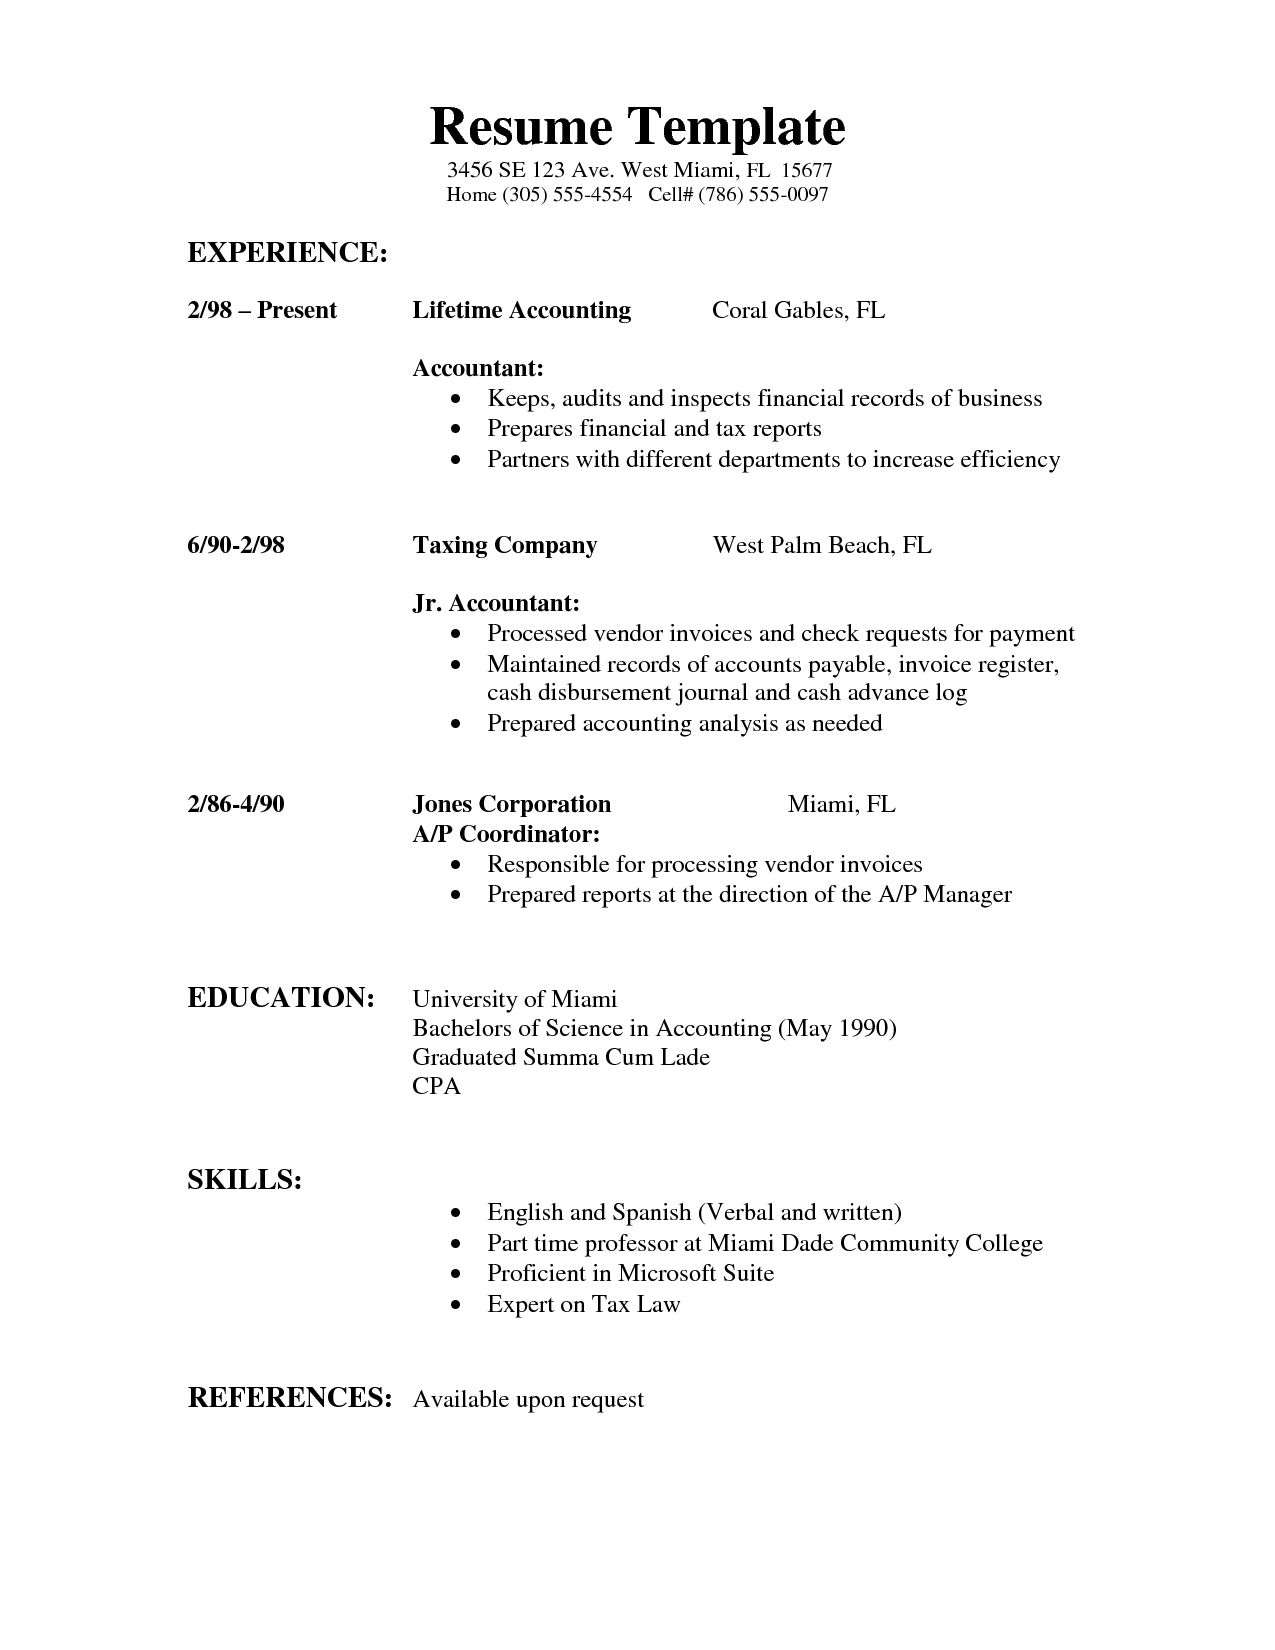 Free Sample Resumes L Andr Resume Examples 3 Letter And Resume